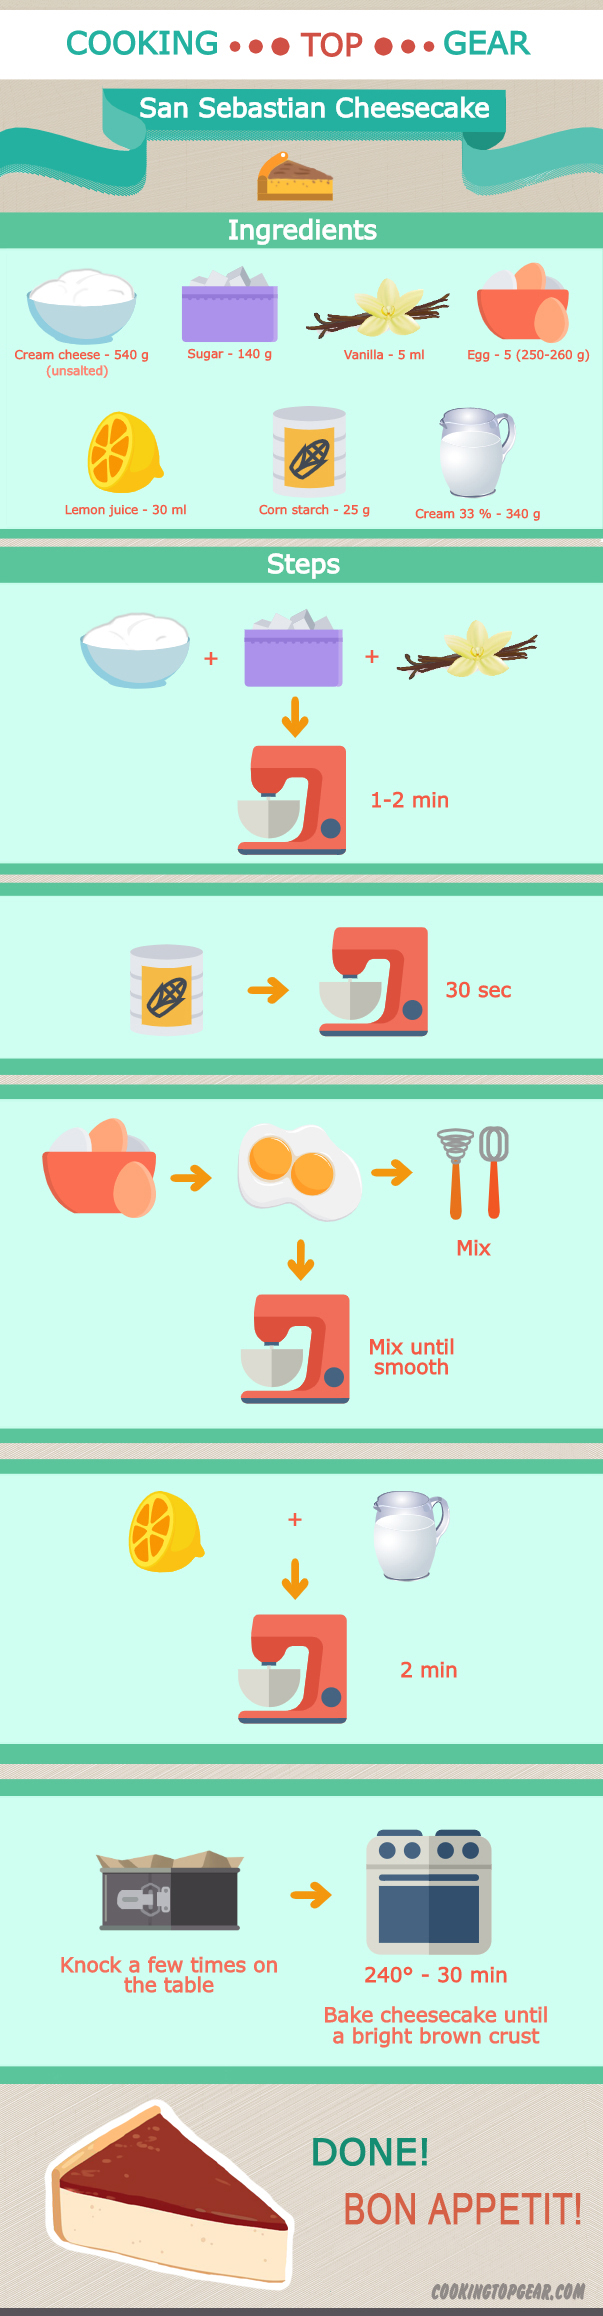 San Sebastian Cheesecake: Step By Step On How To Make It - Infographic